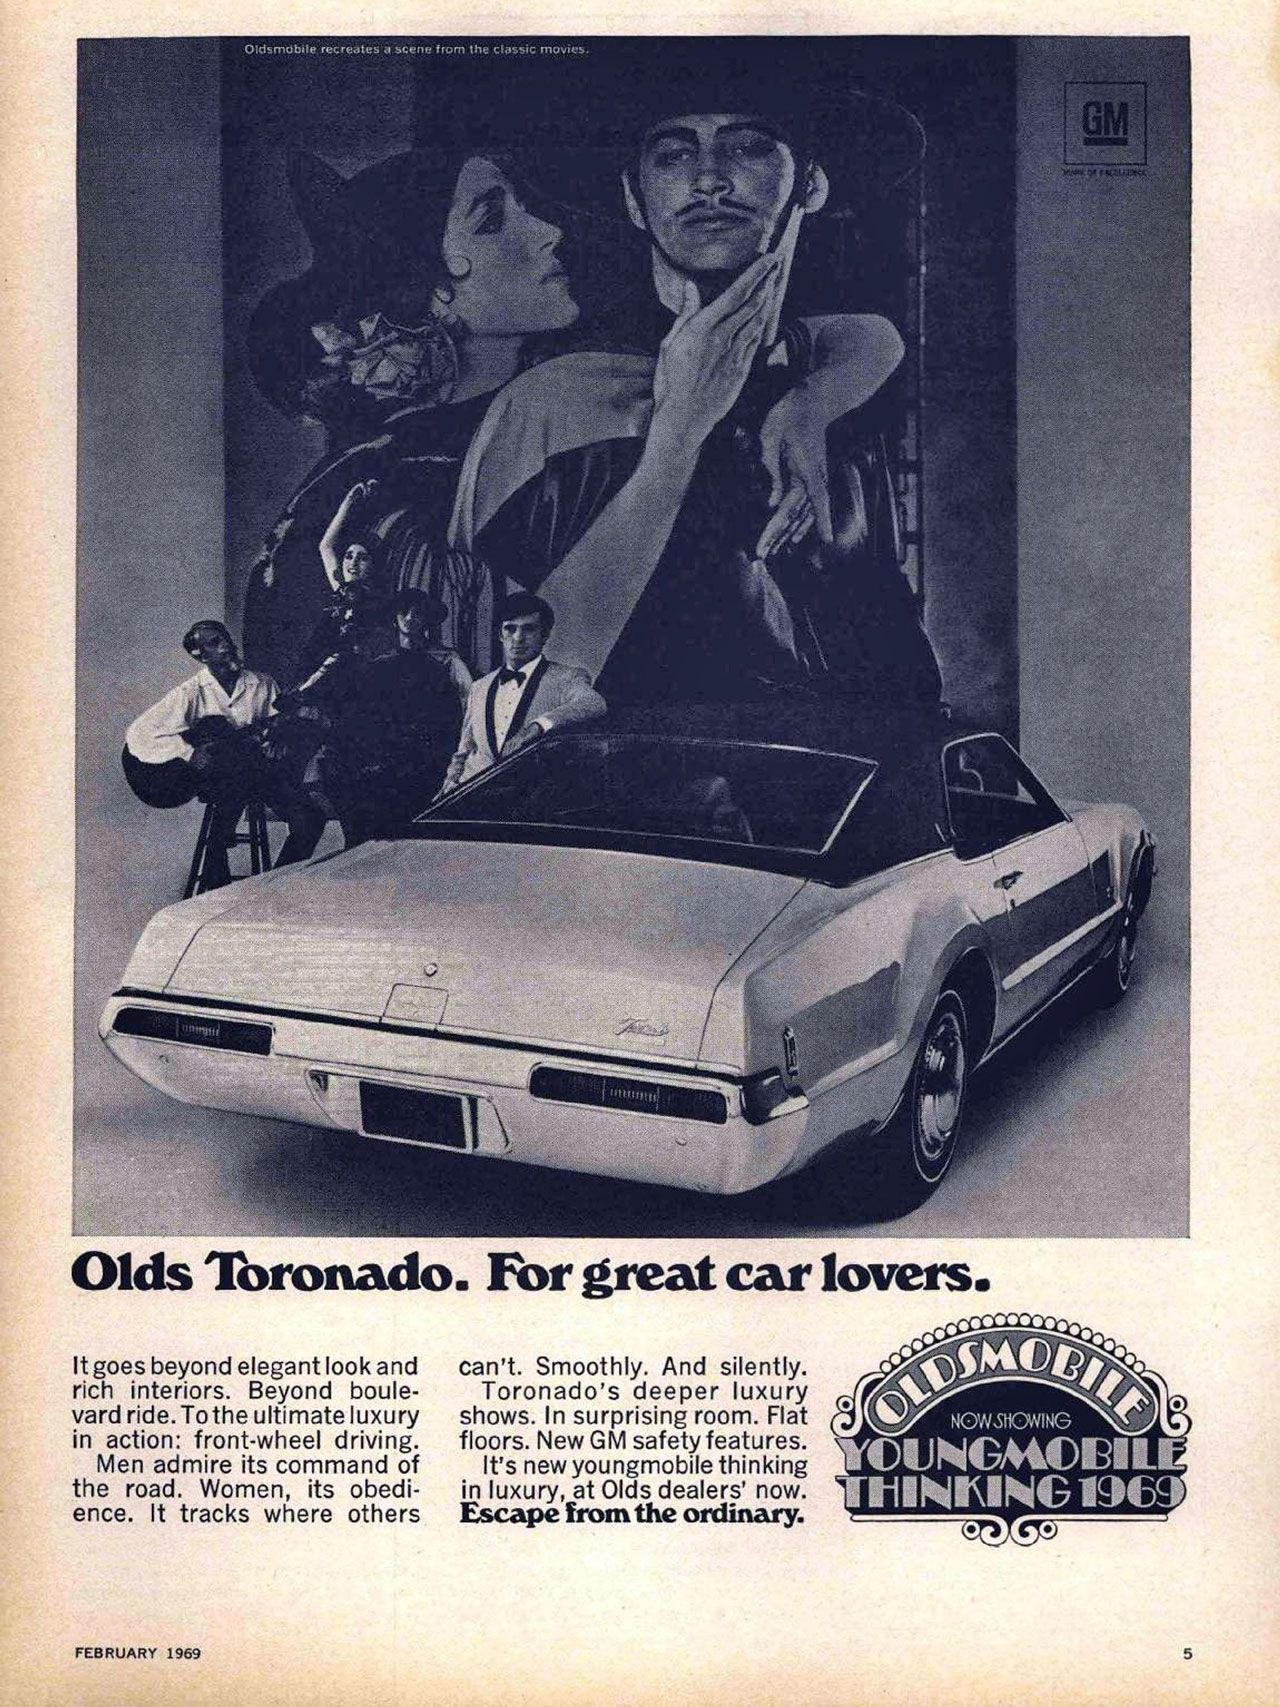 Olds Toronado. For great car lovers. It goes beyond elegant look and rich interiors. Beyond boule-vard ride. To the ultimate luxury in action: front-wheel driving. Men admire its command of the road. Women, its obedi-ence. It tracks where others can't. Smoothly. And silently. Toronado's deeper luxury shows. In surprising room. Flat floors. New GM safety features. It's new youngmobile thinking in luxury, at Olds dealers' now. Escape from the ordinary.